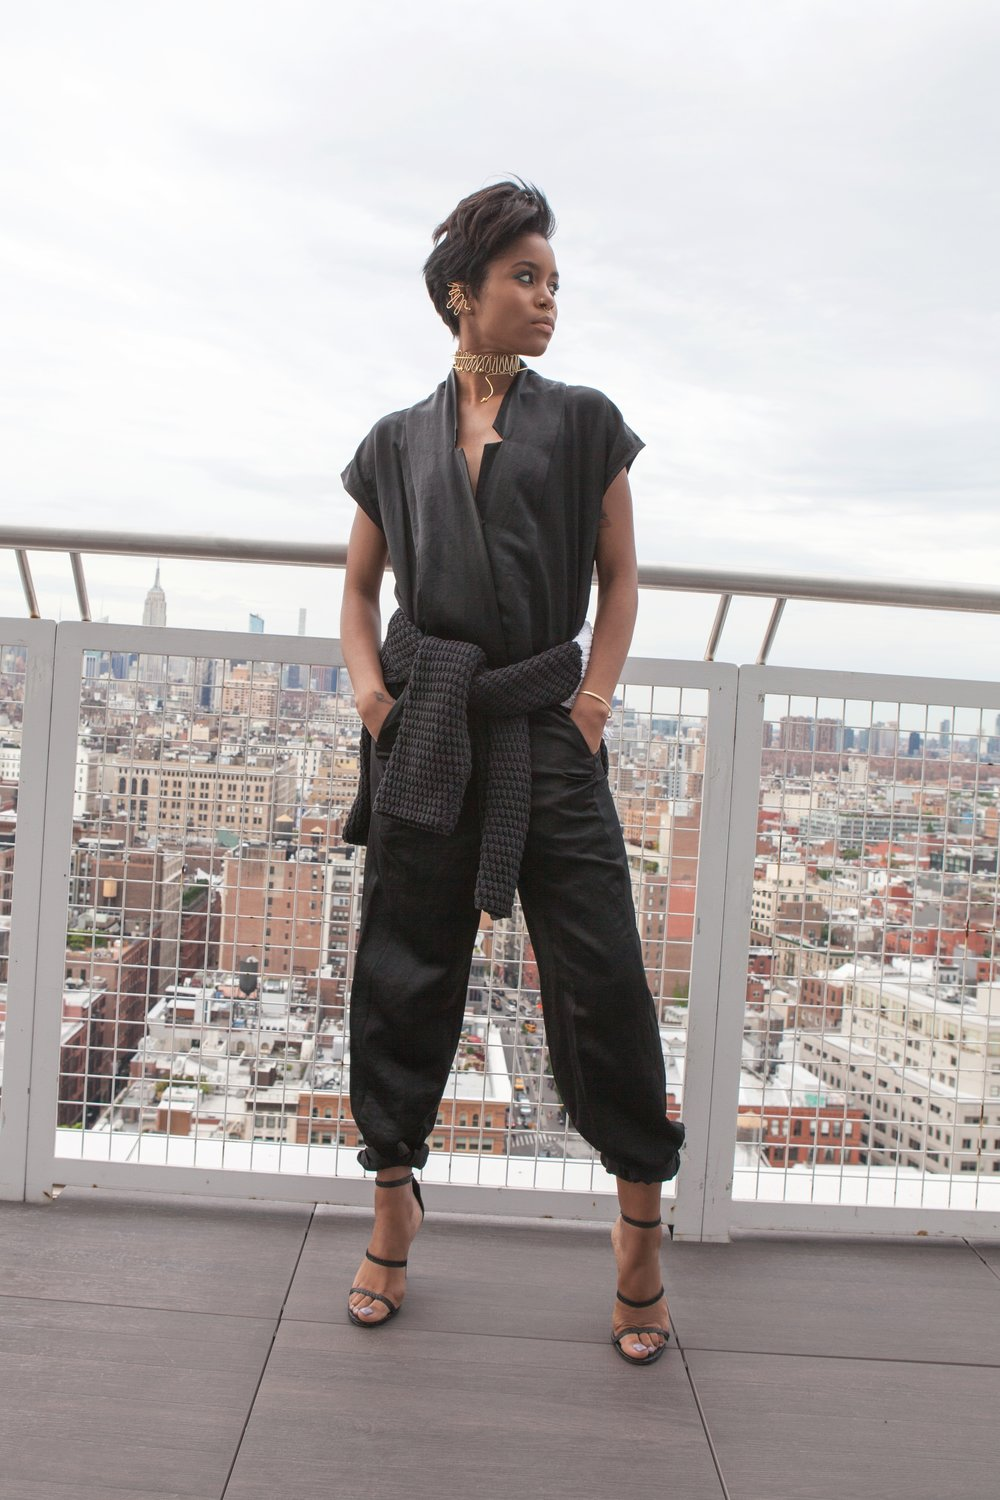 #TLAPPROVEDDARYCE 'REECE' BROWN-WILLIS - MEET MANHATTAN'S MULTI-TALENTED TEXTURE POWERHOUSE:REECE BROWN-WILLIS.